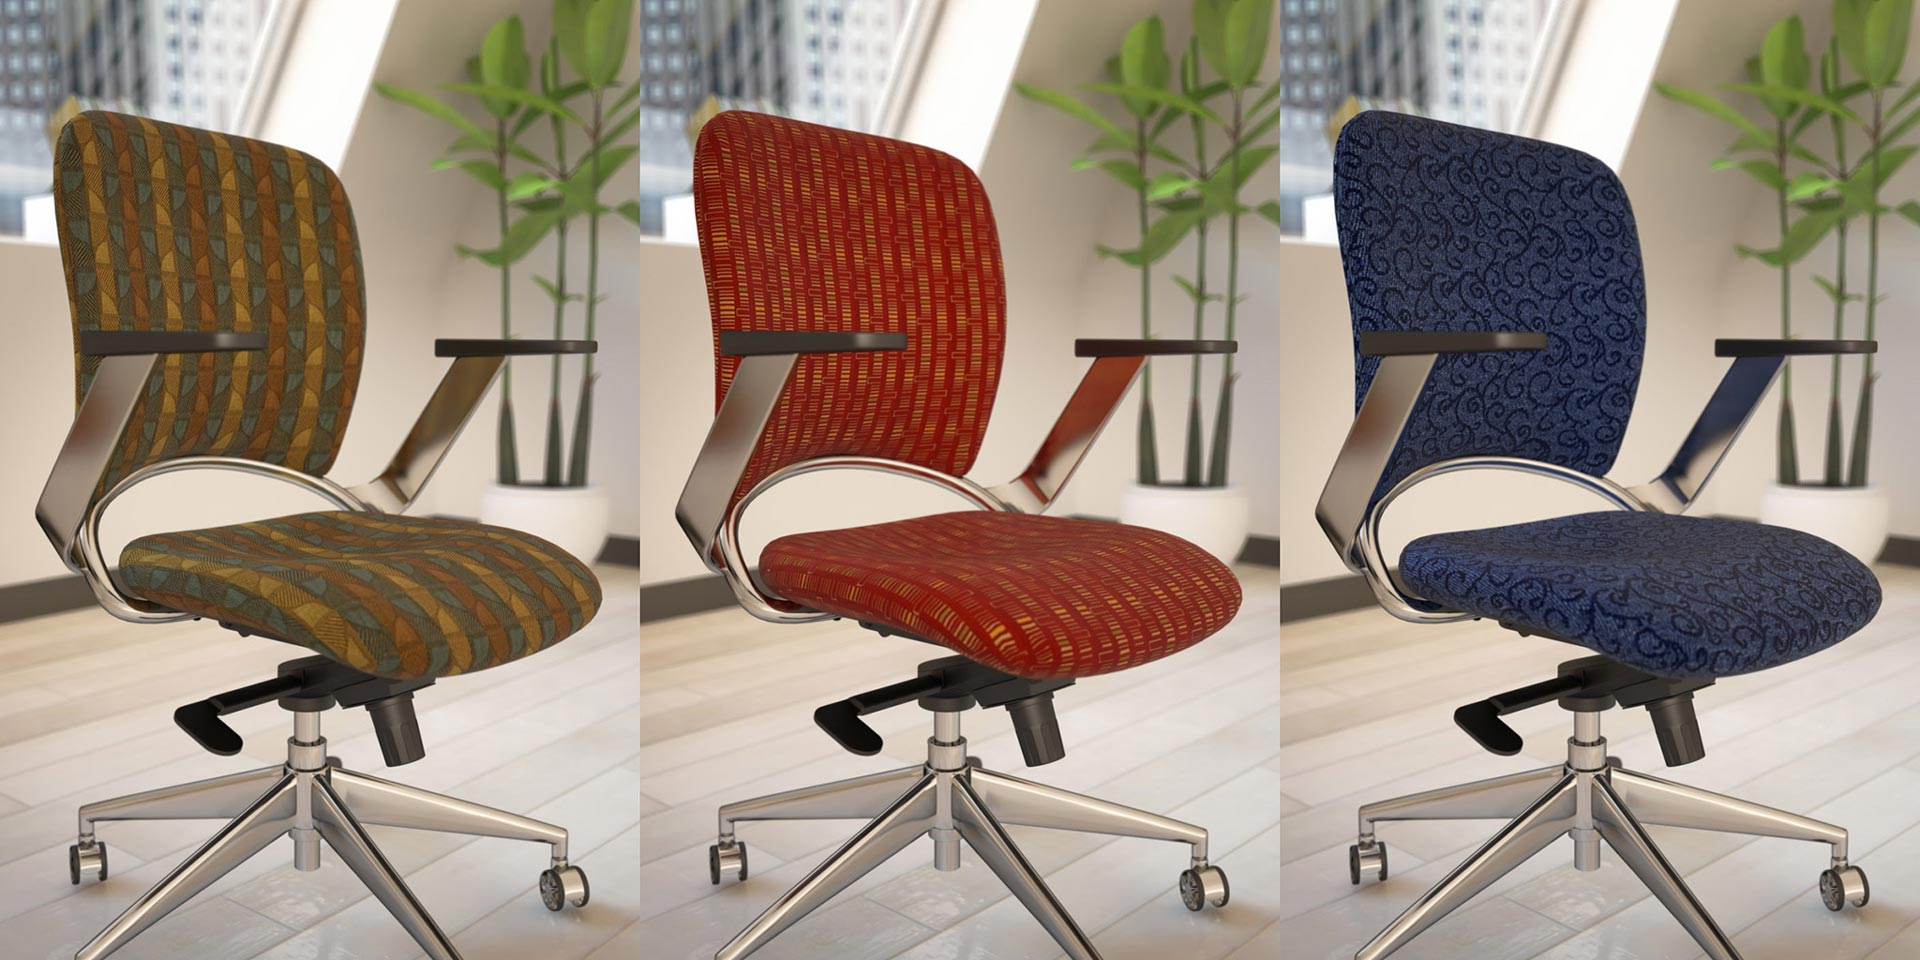 Three 3D rendered office chairs with different colored patterns